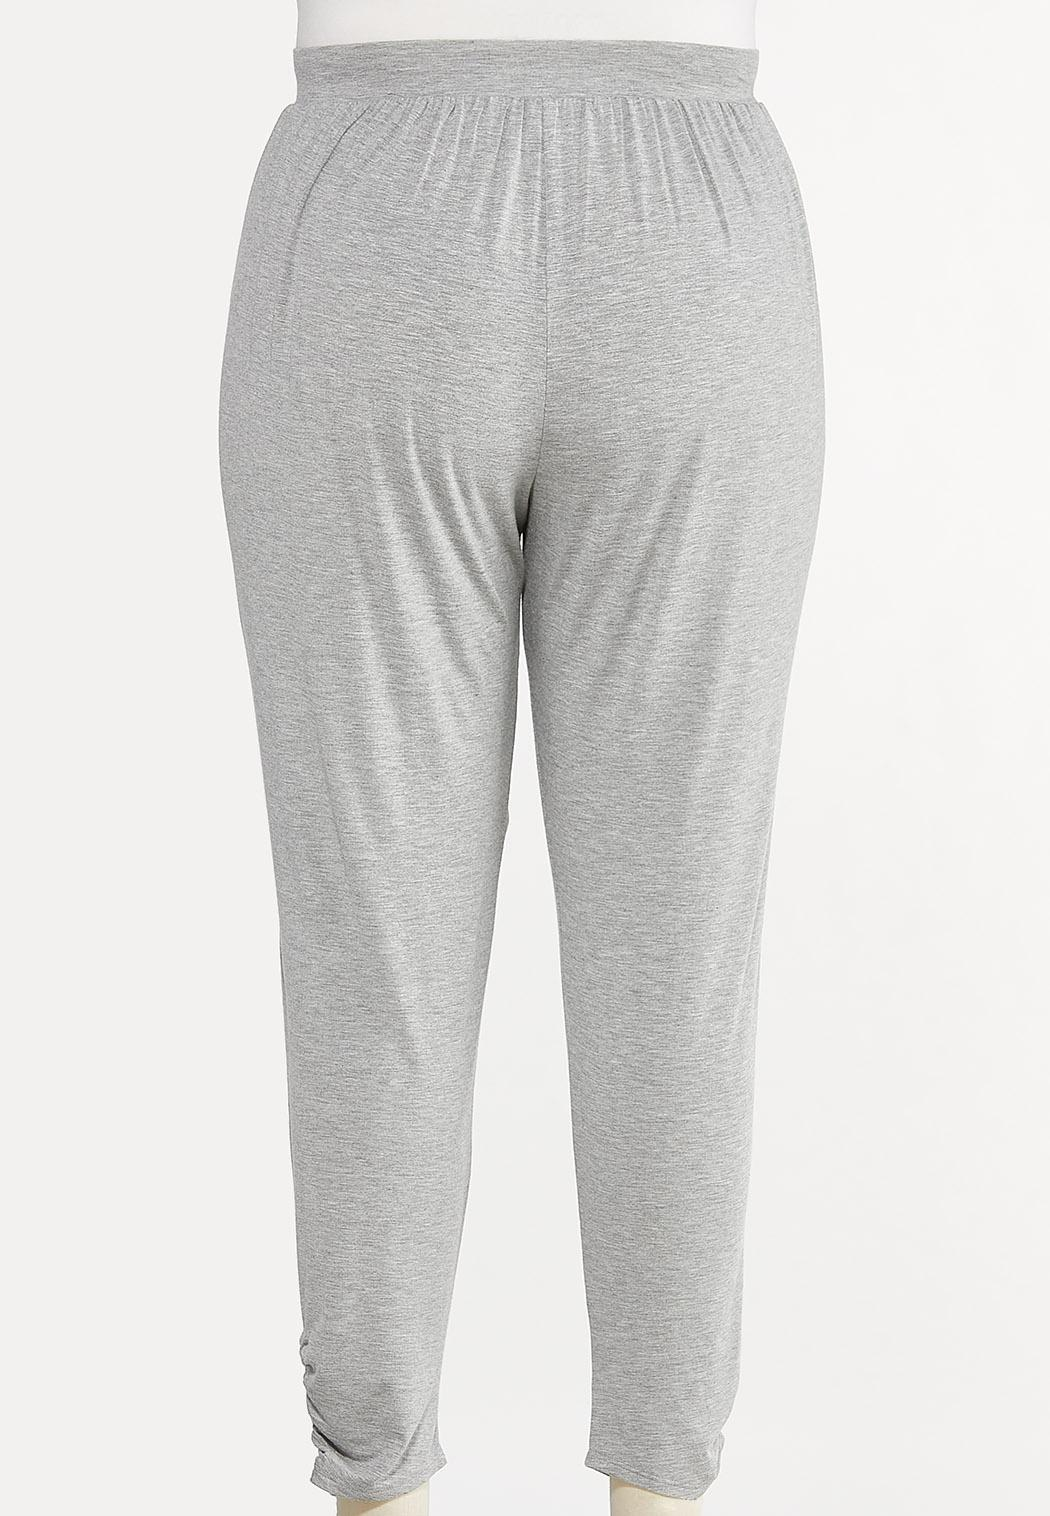 Plus Size Gray Ruched Pants (Item #44598362)